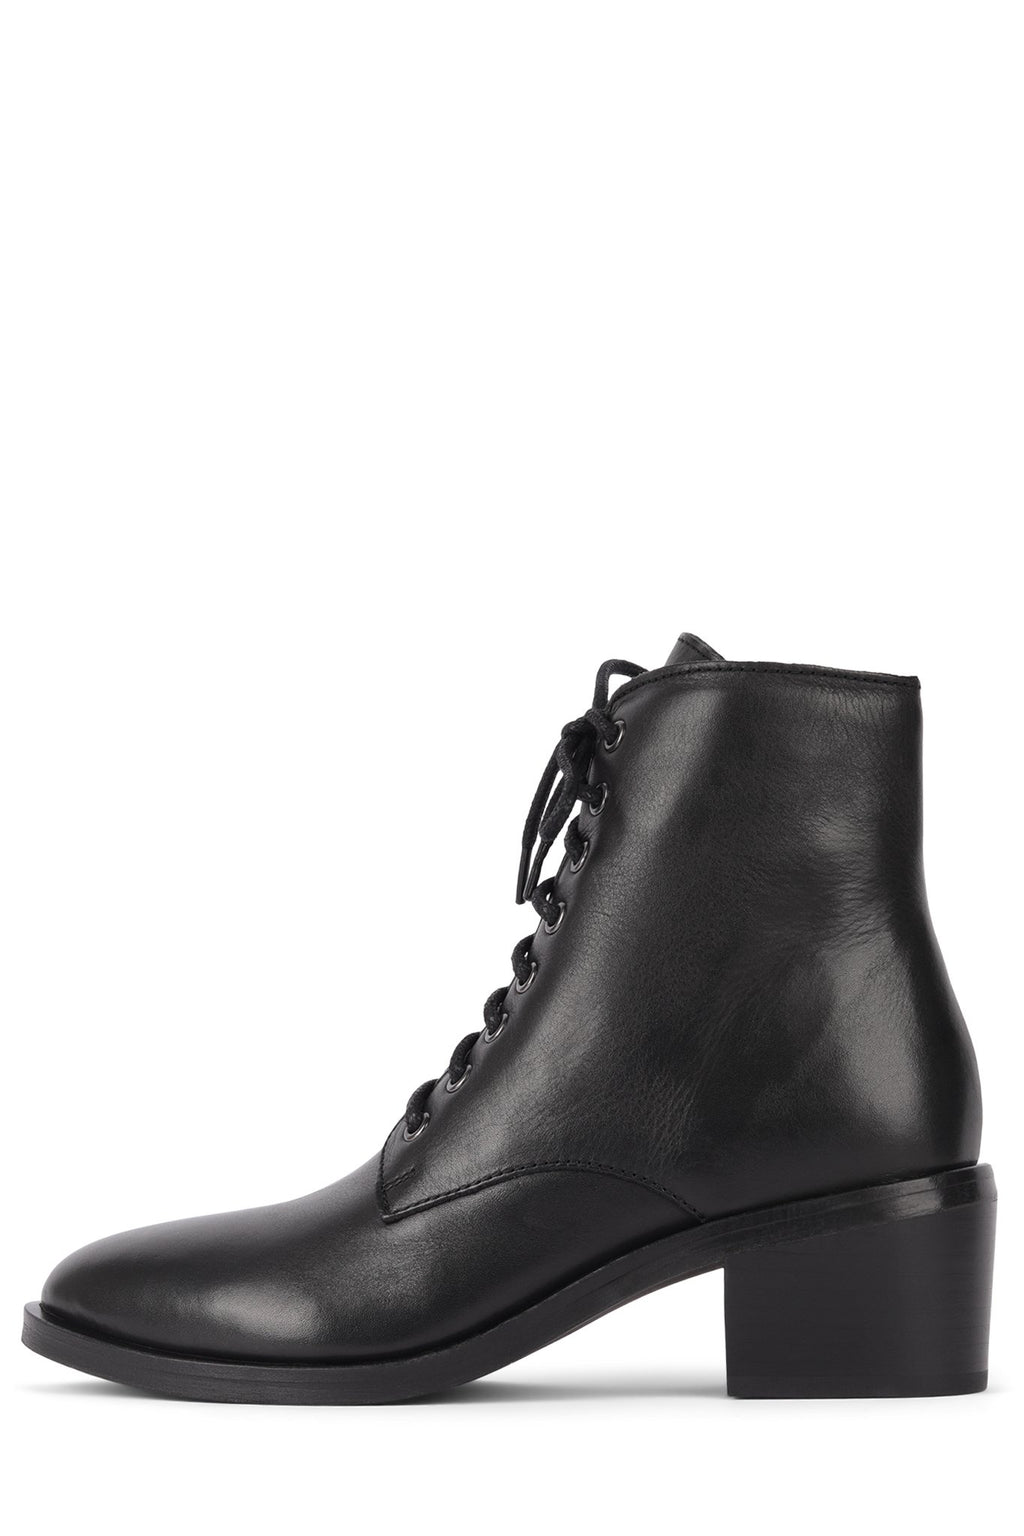 GAMIN-2 Jeffrey Campbell Black 6